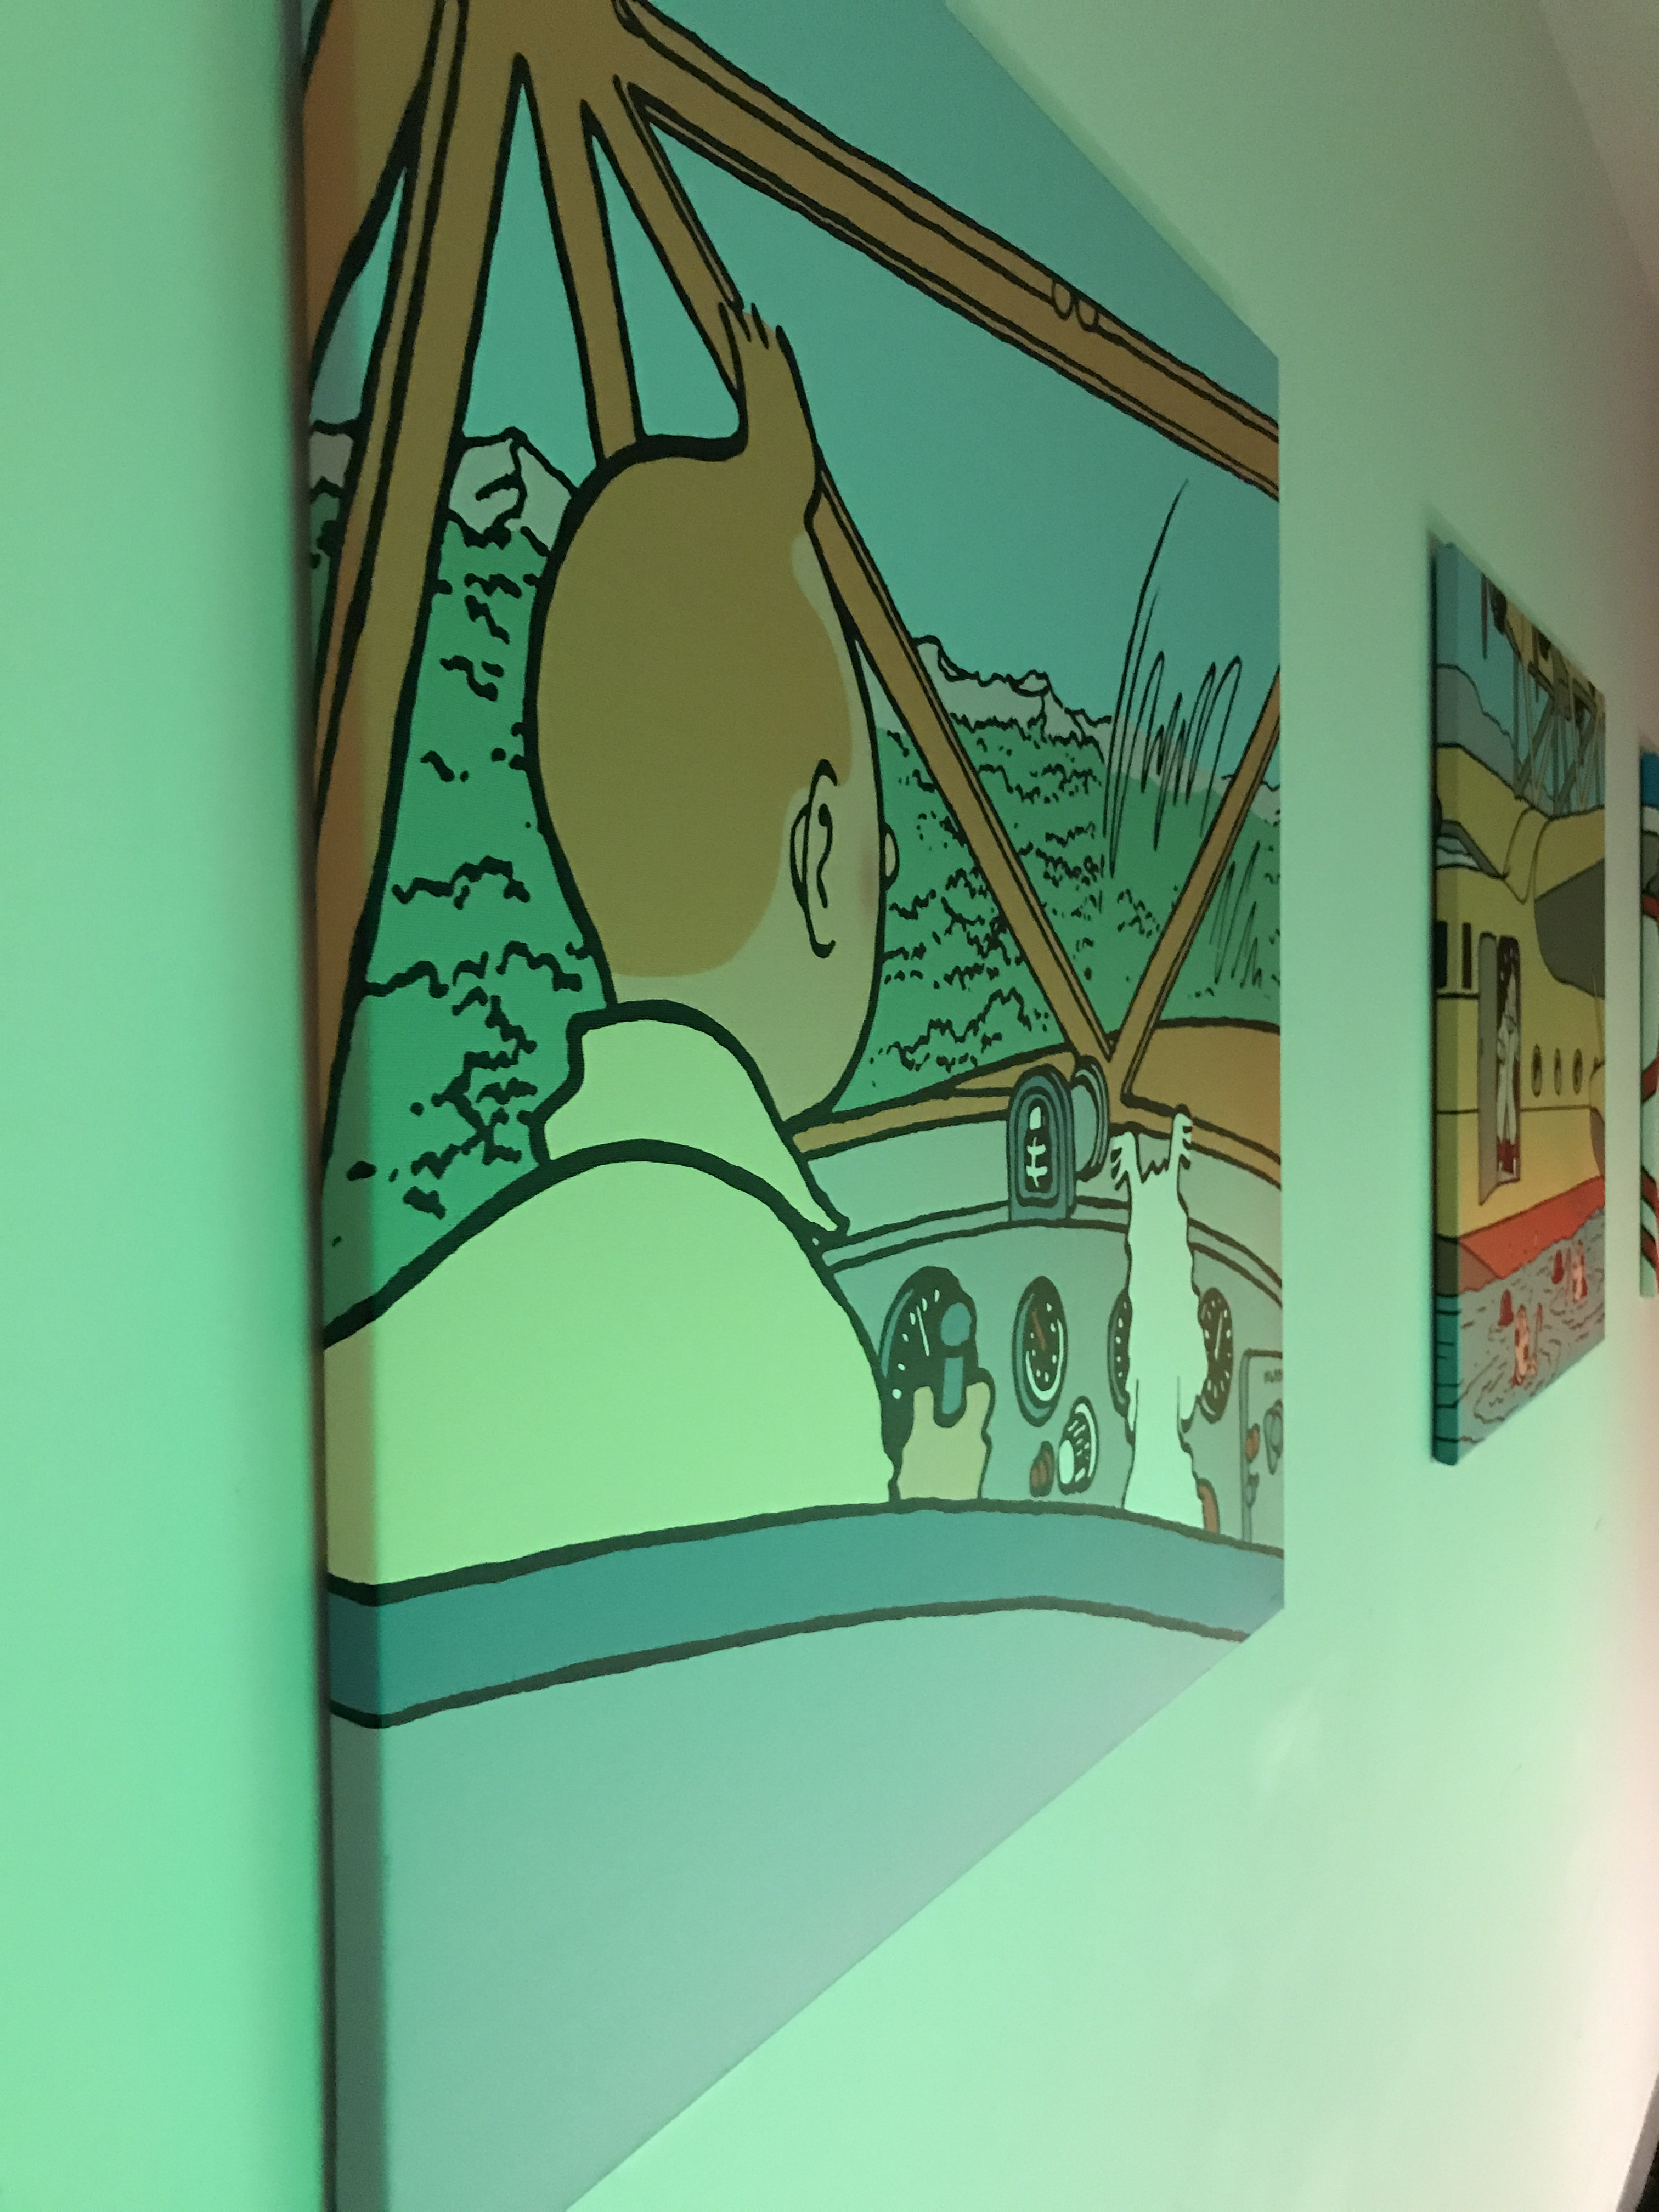 Tintin picture on the wall of the loft in Brussels